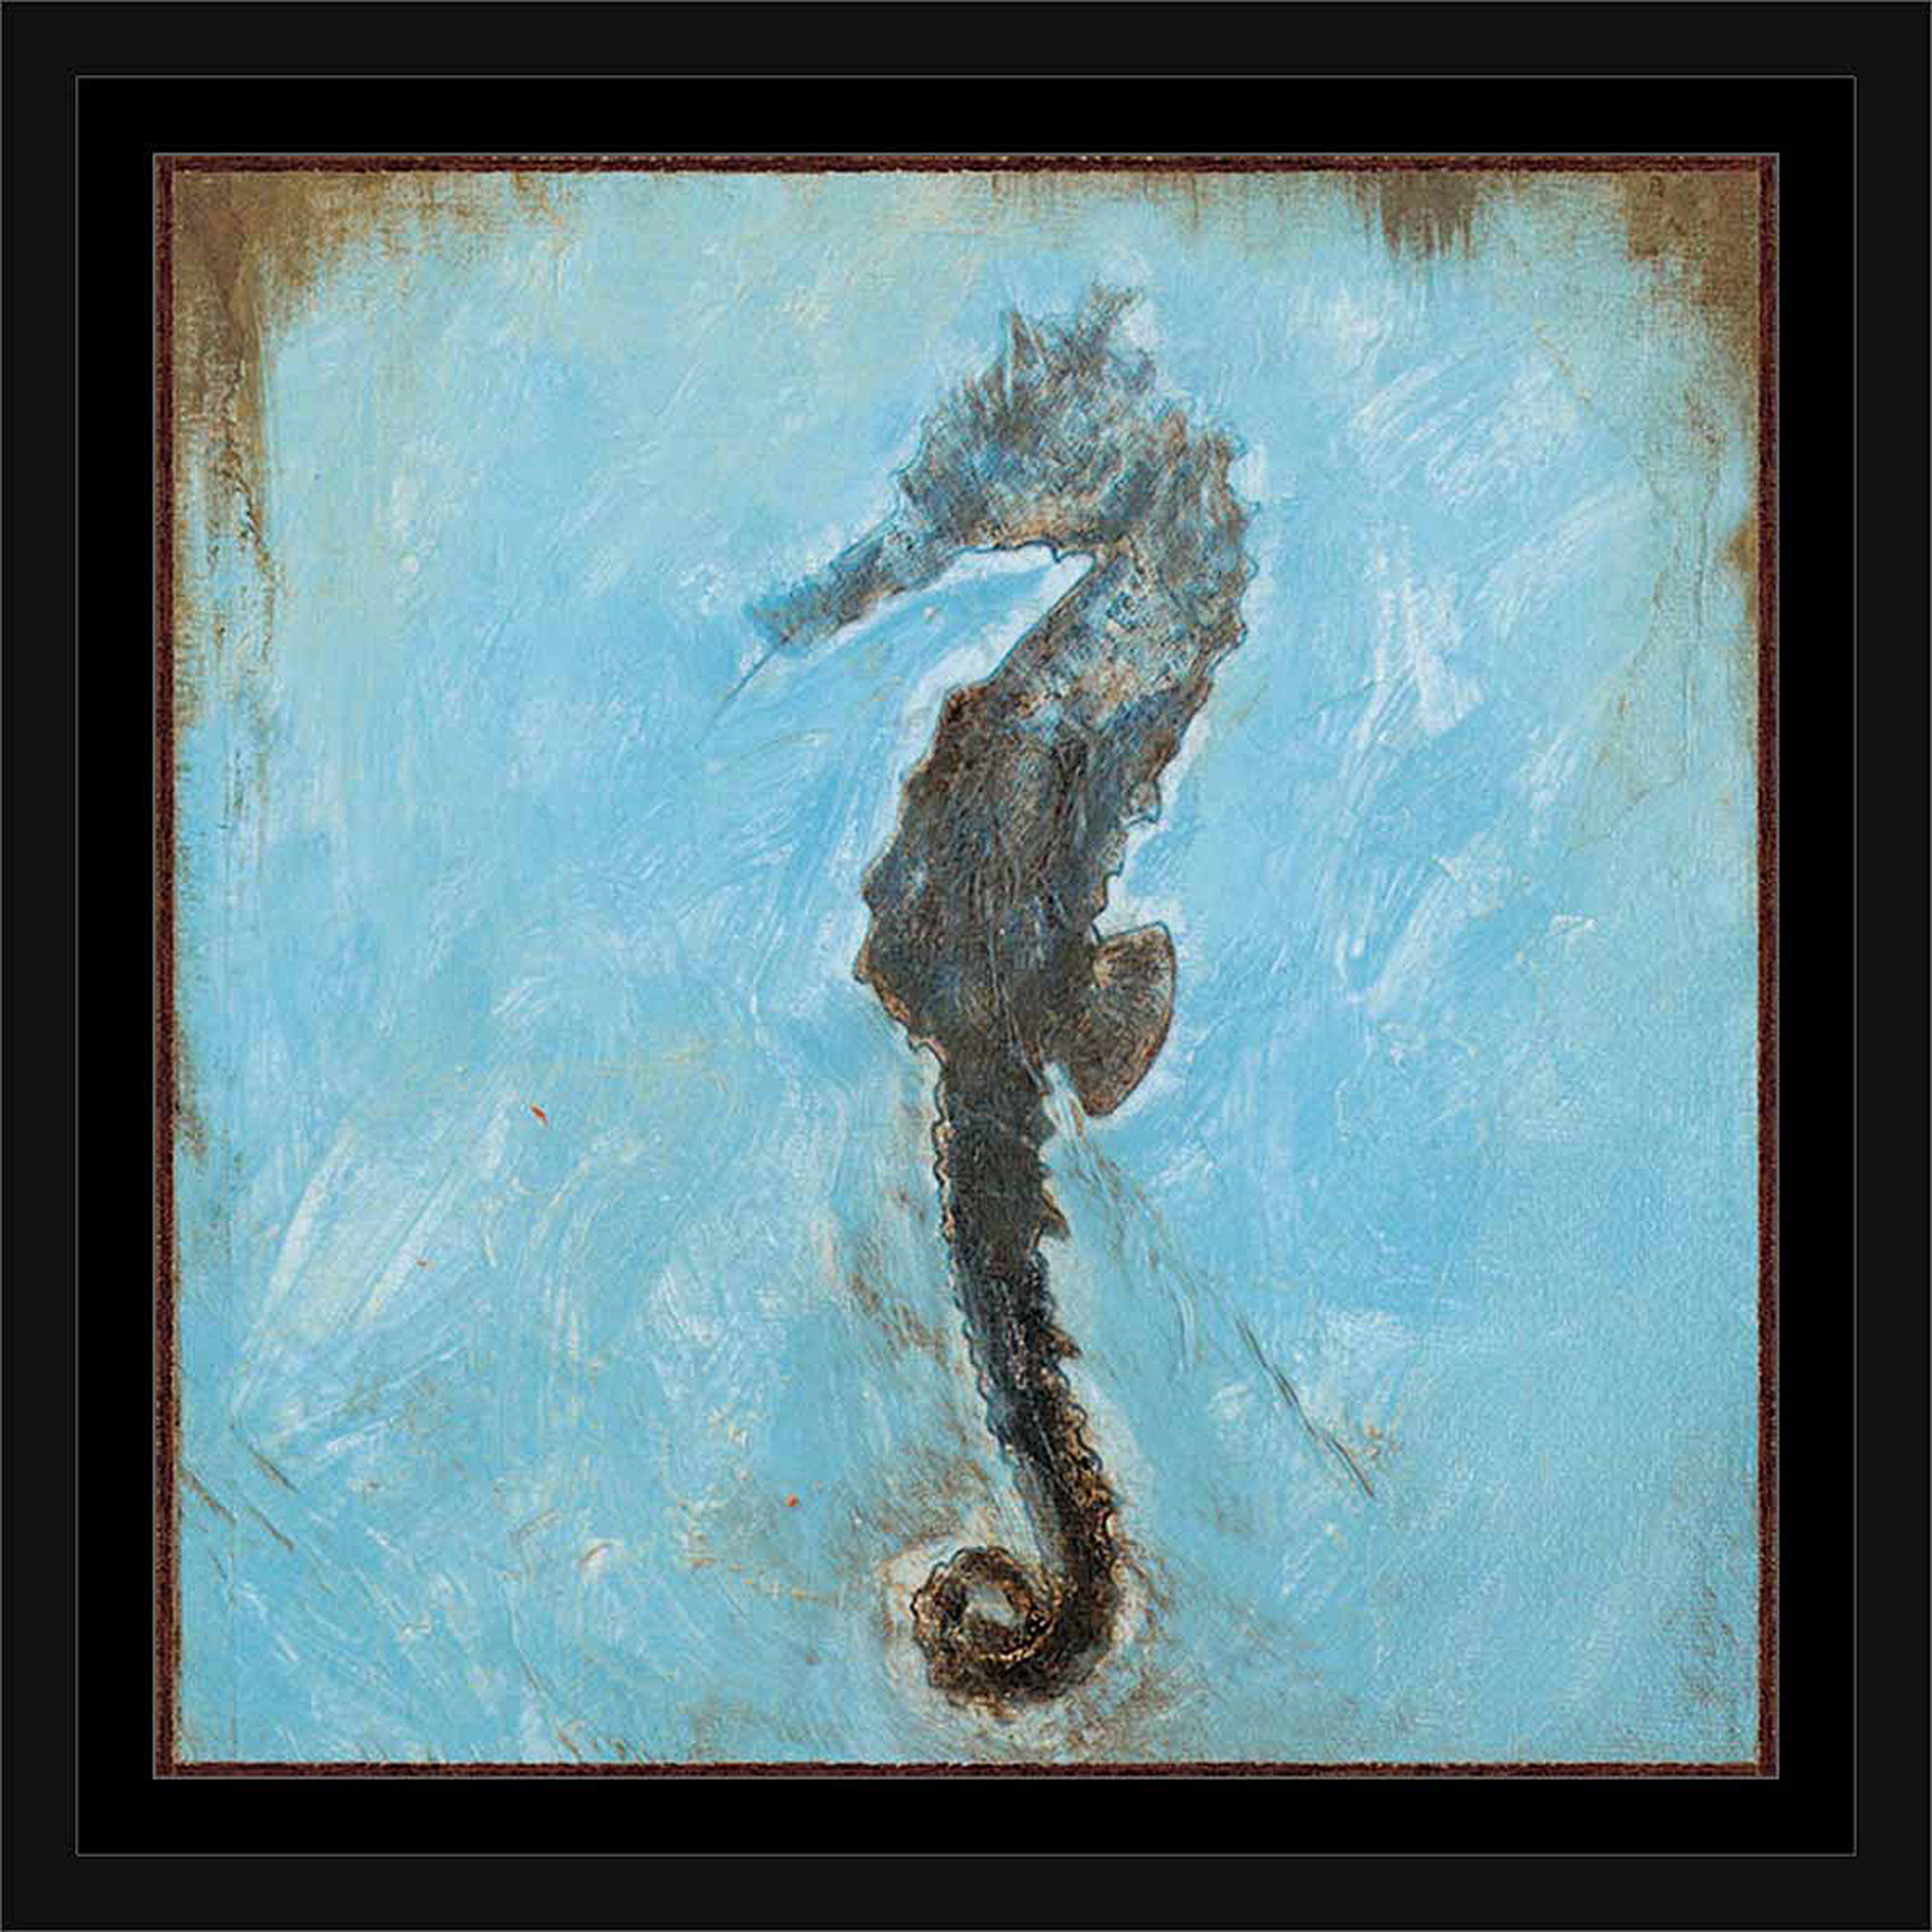 Seahorse Distressed Square Coastal Painting Tile Blue & Brown, Framed Canvas Art by Pied Piper Creative